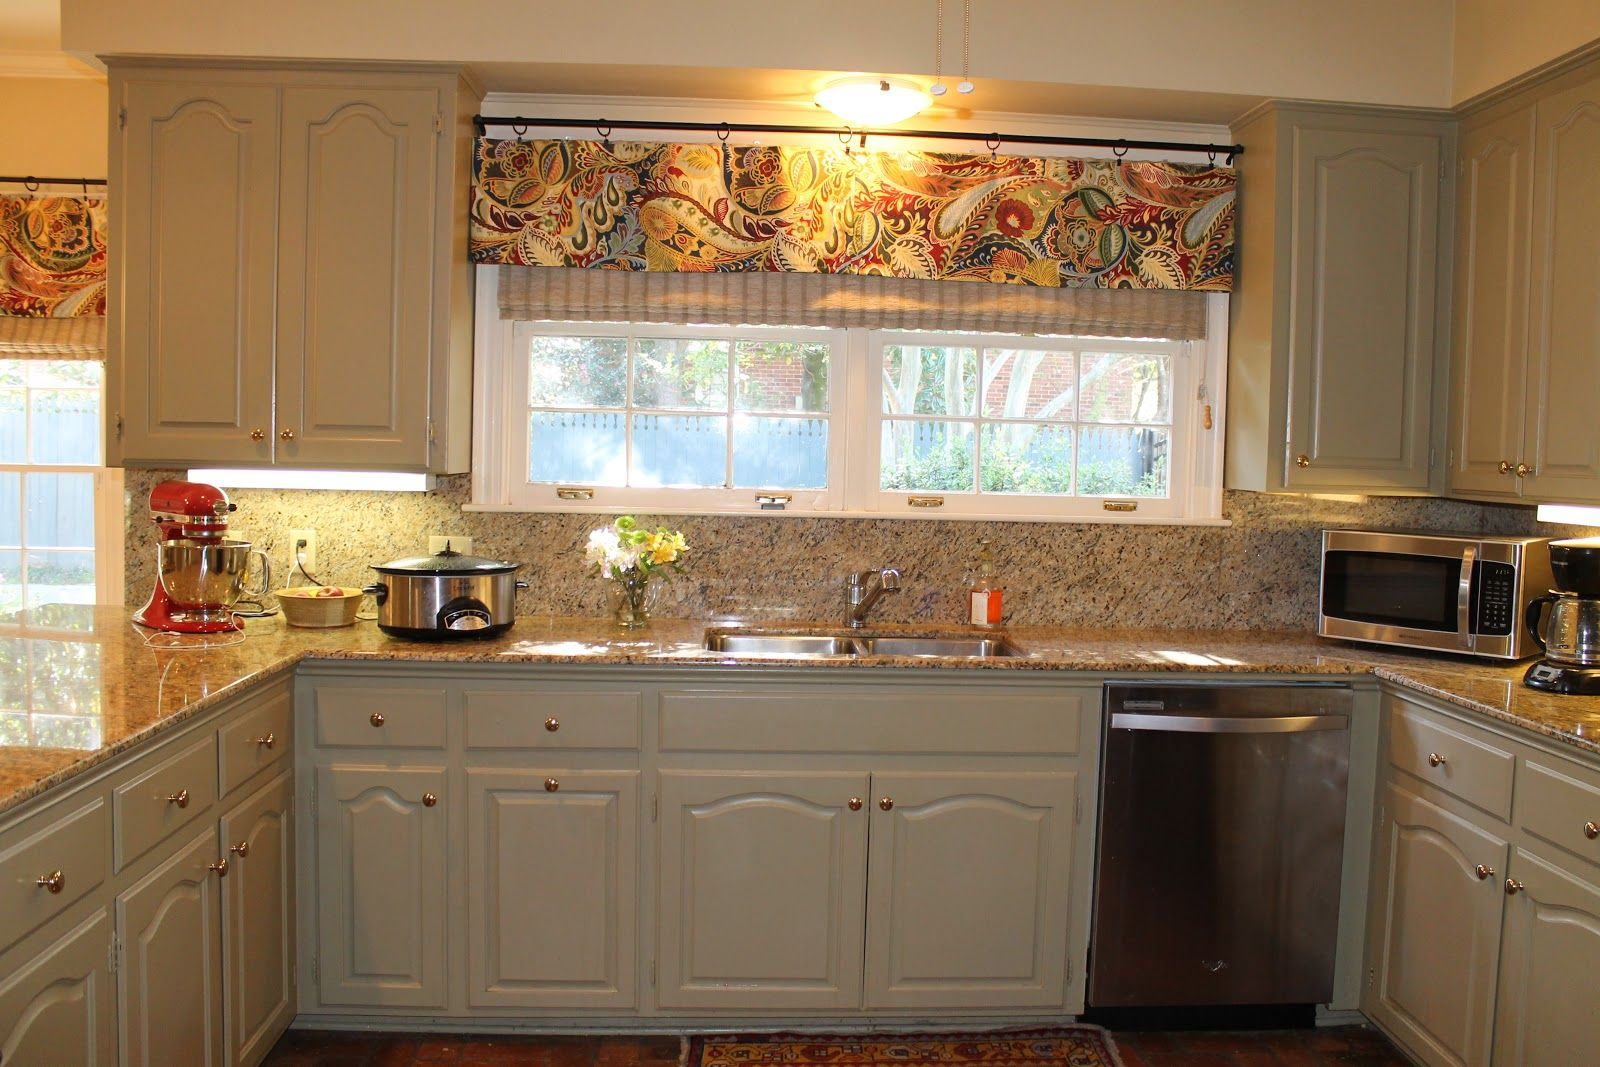 Kitchen fabulous brown fabric over valance home decor pinterest